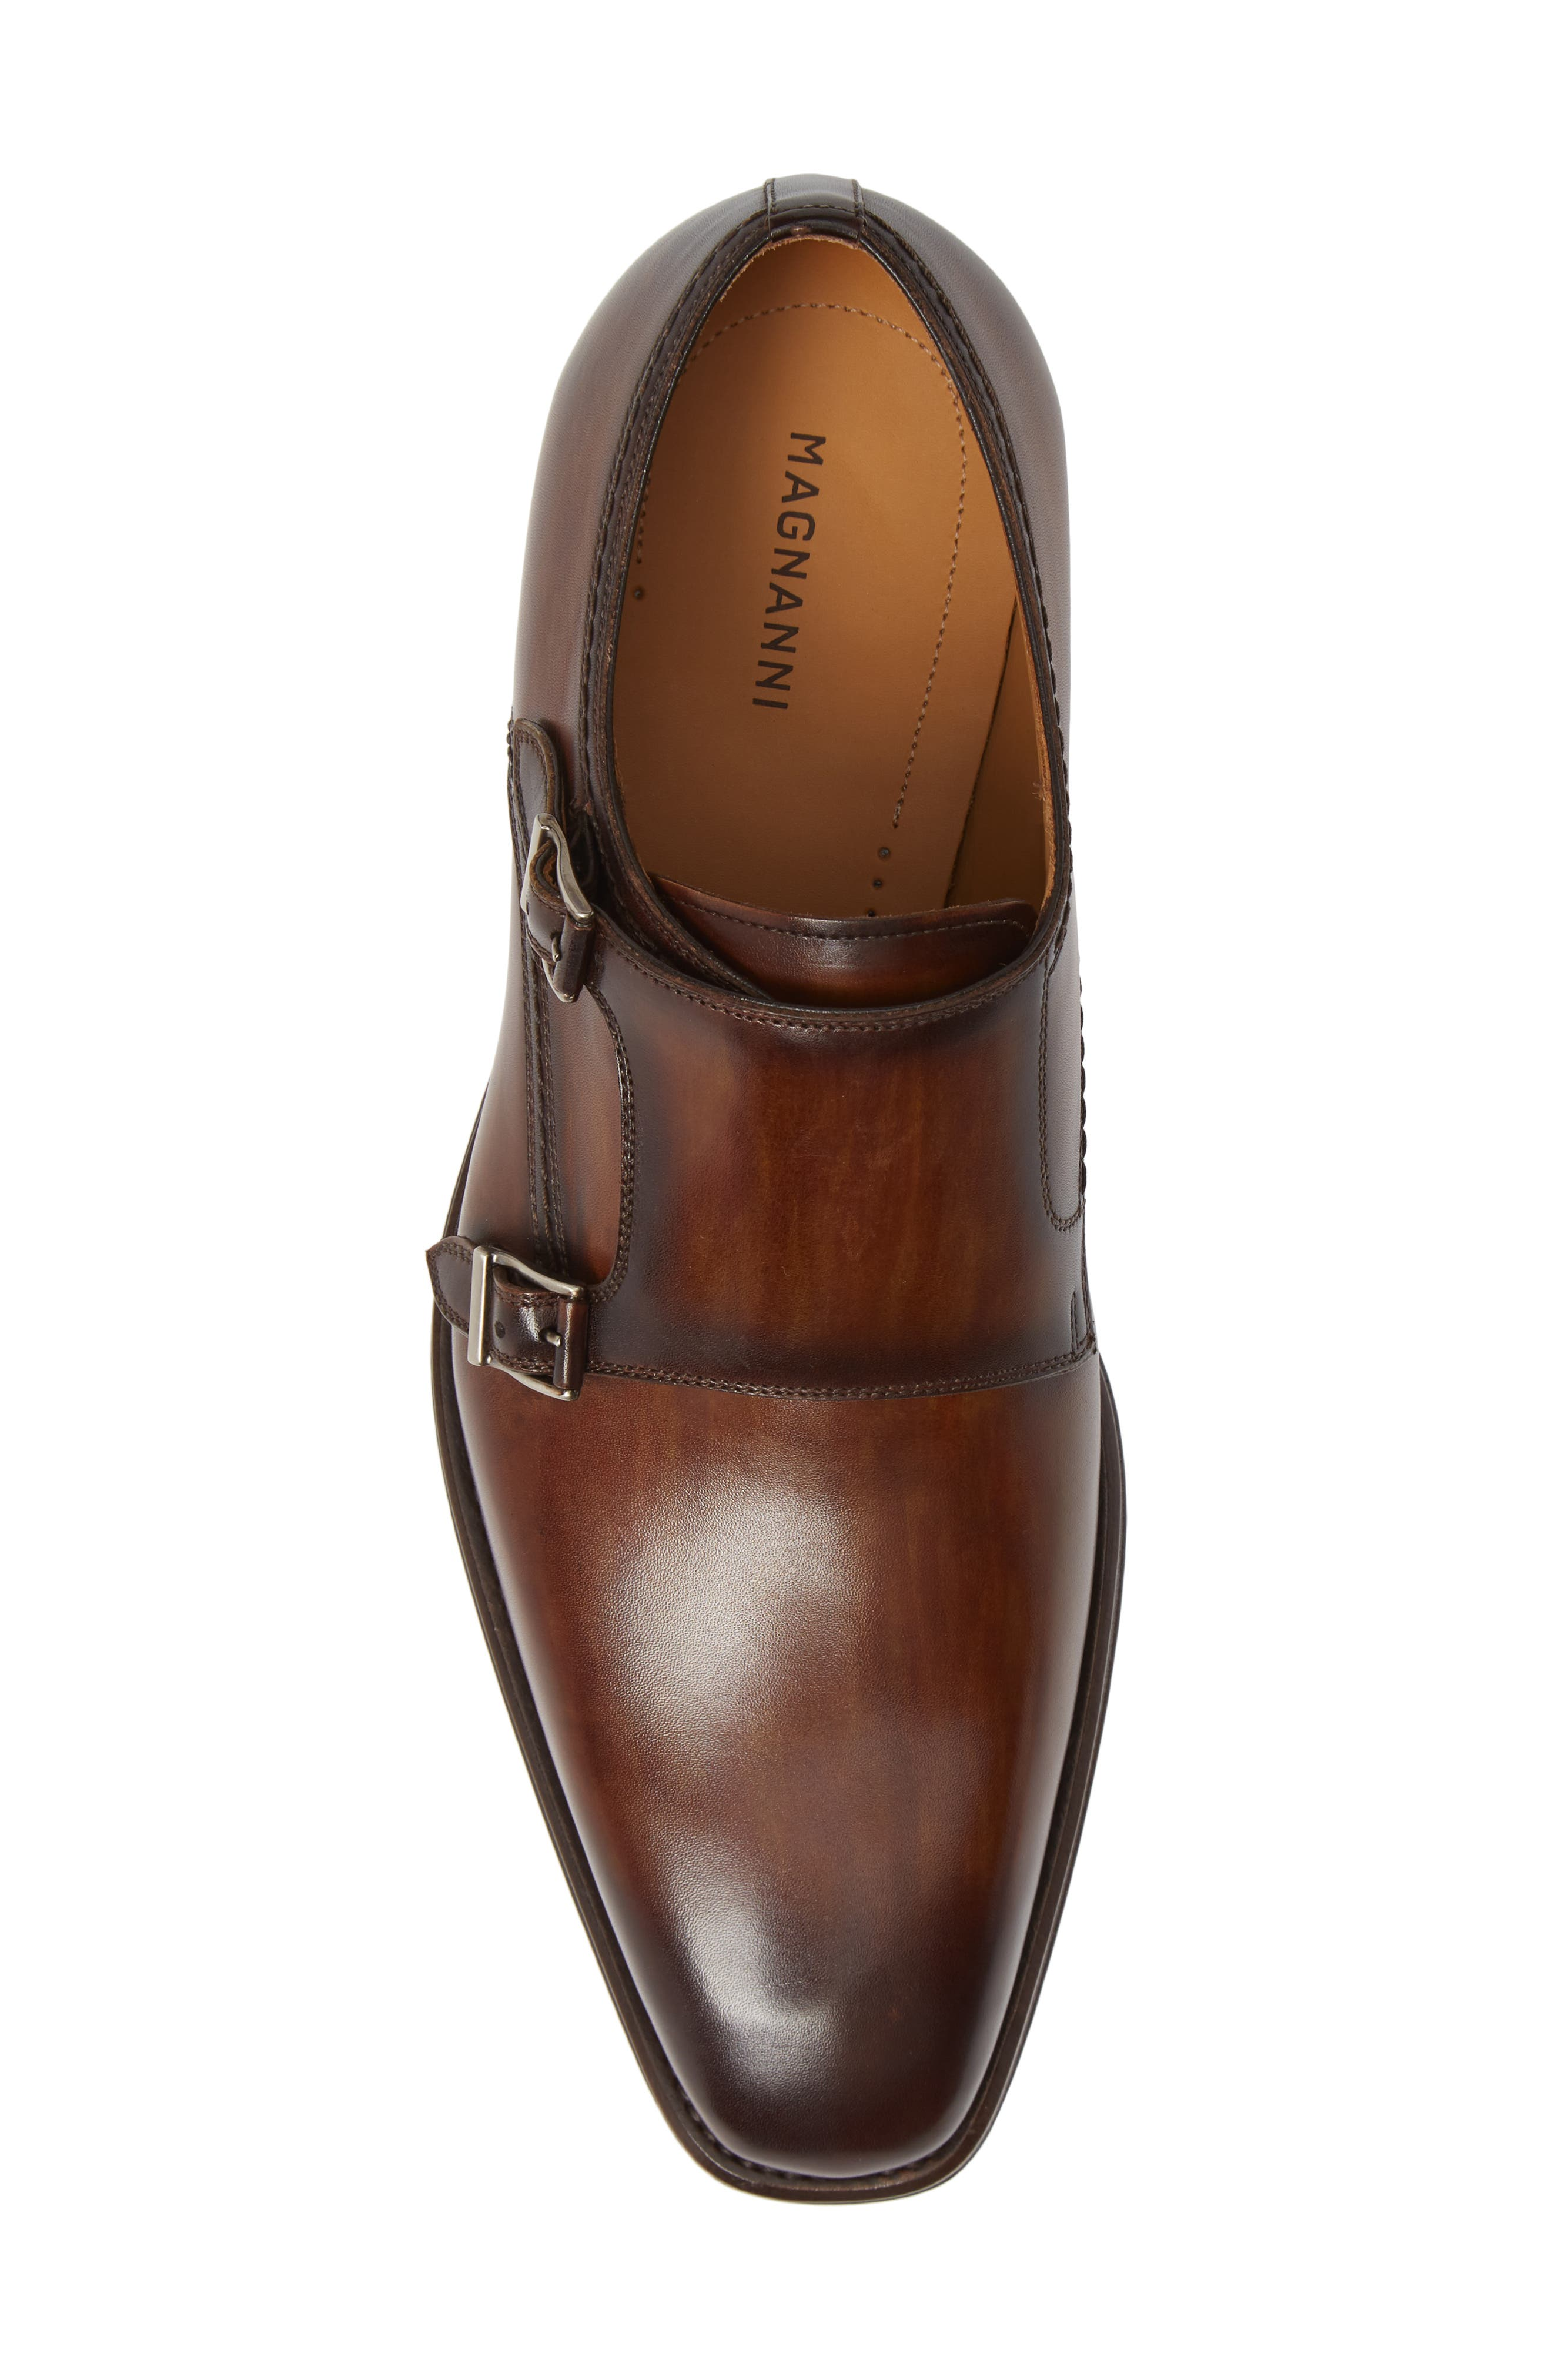 Landon Double Strap Monk Shoe,                             Alternate thumbnail 5, color,                             TOBACCO LEATHER